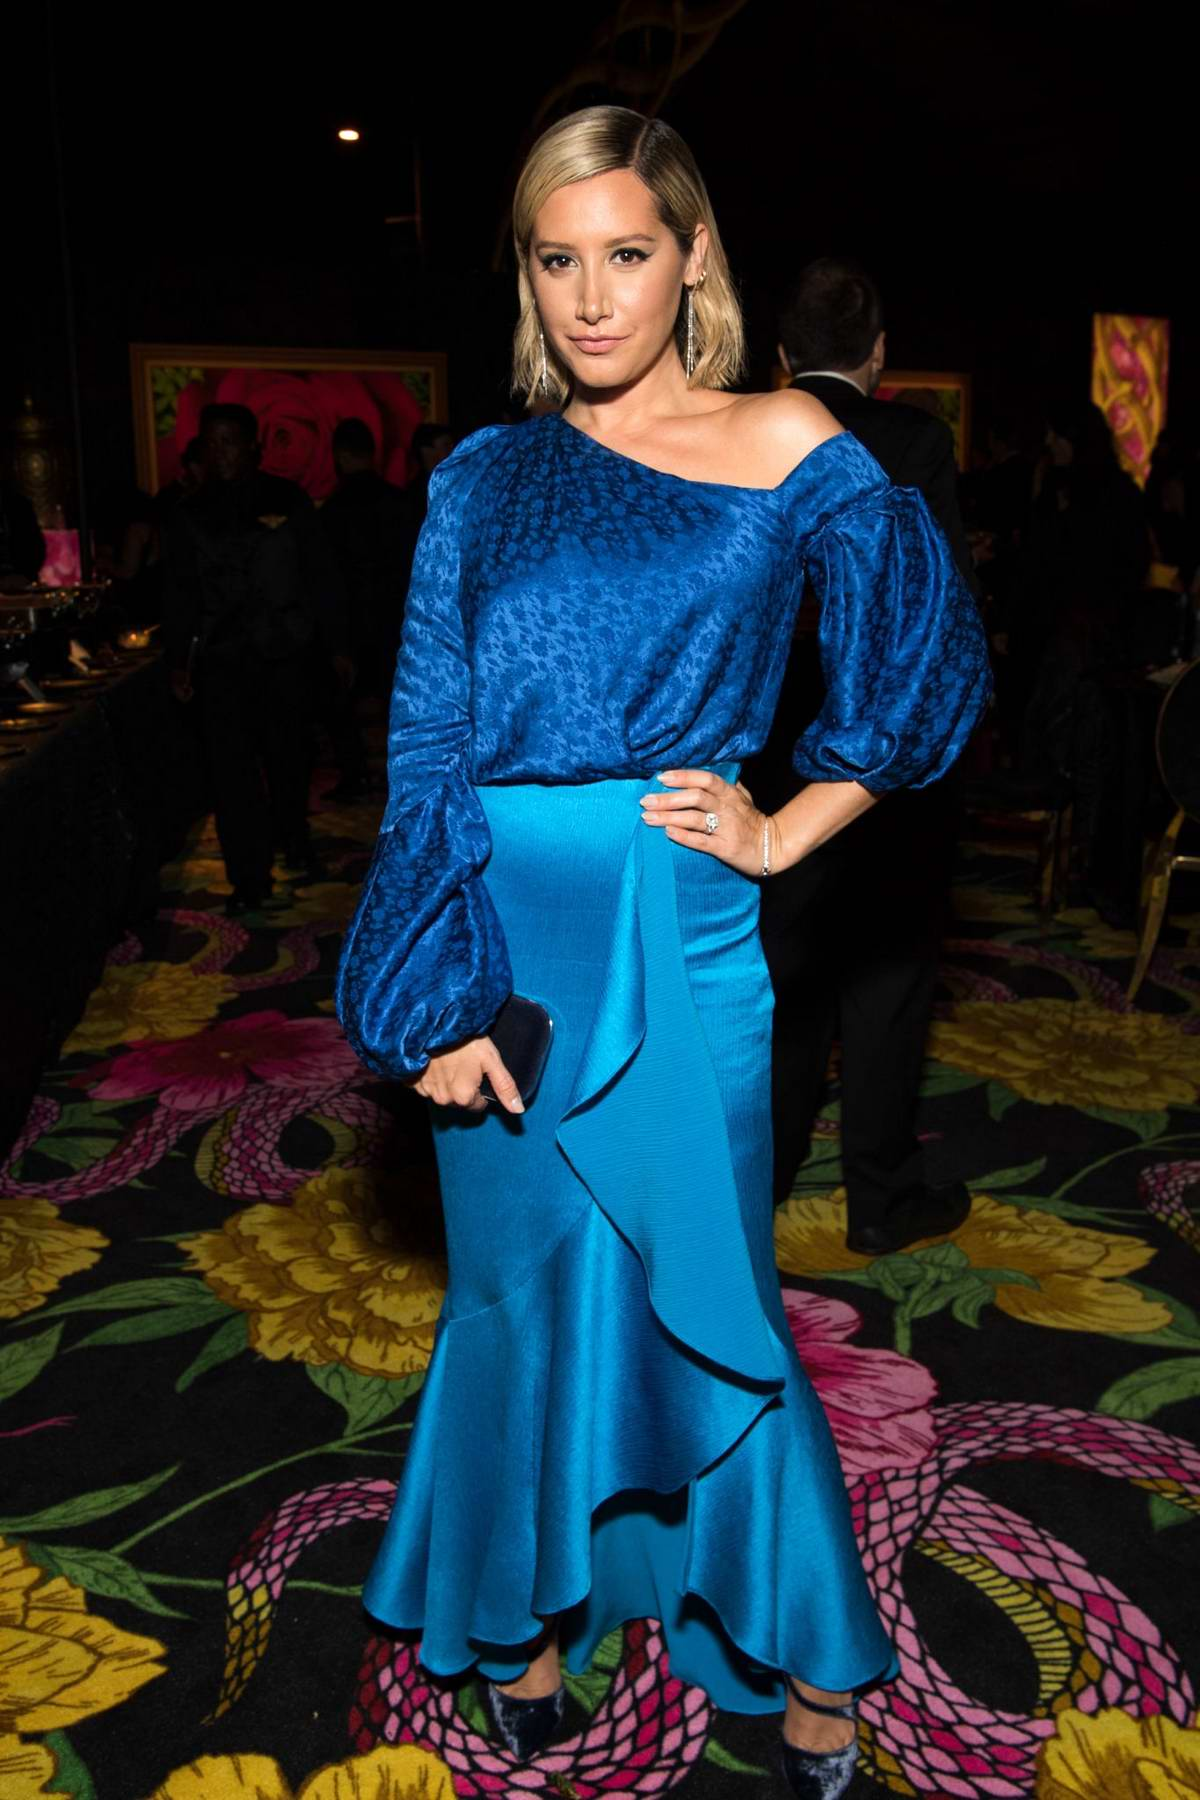 Ashley Tisdale attends 70th Primetime Emmy Awards HBO party at the Pacific Design Center in Los Angeles